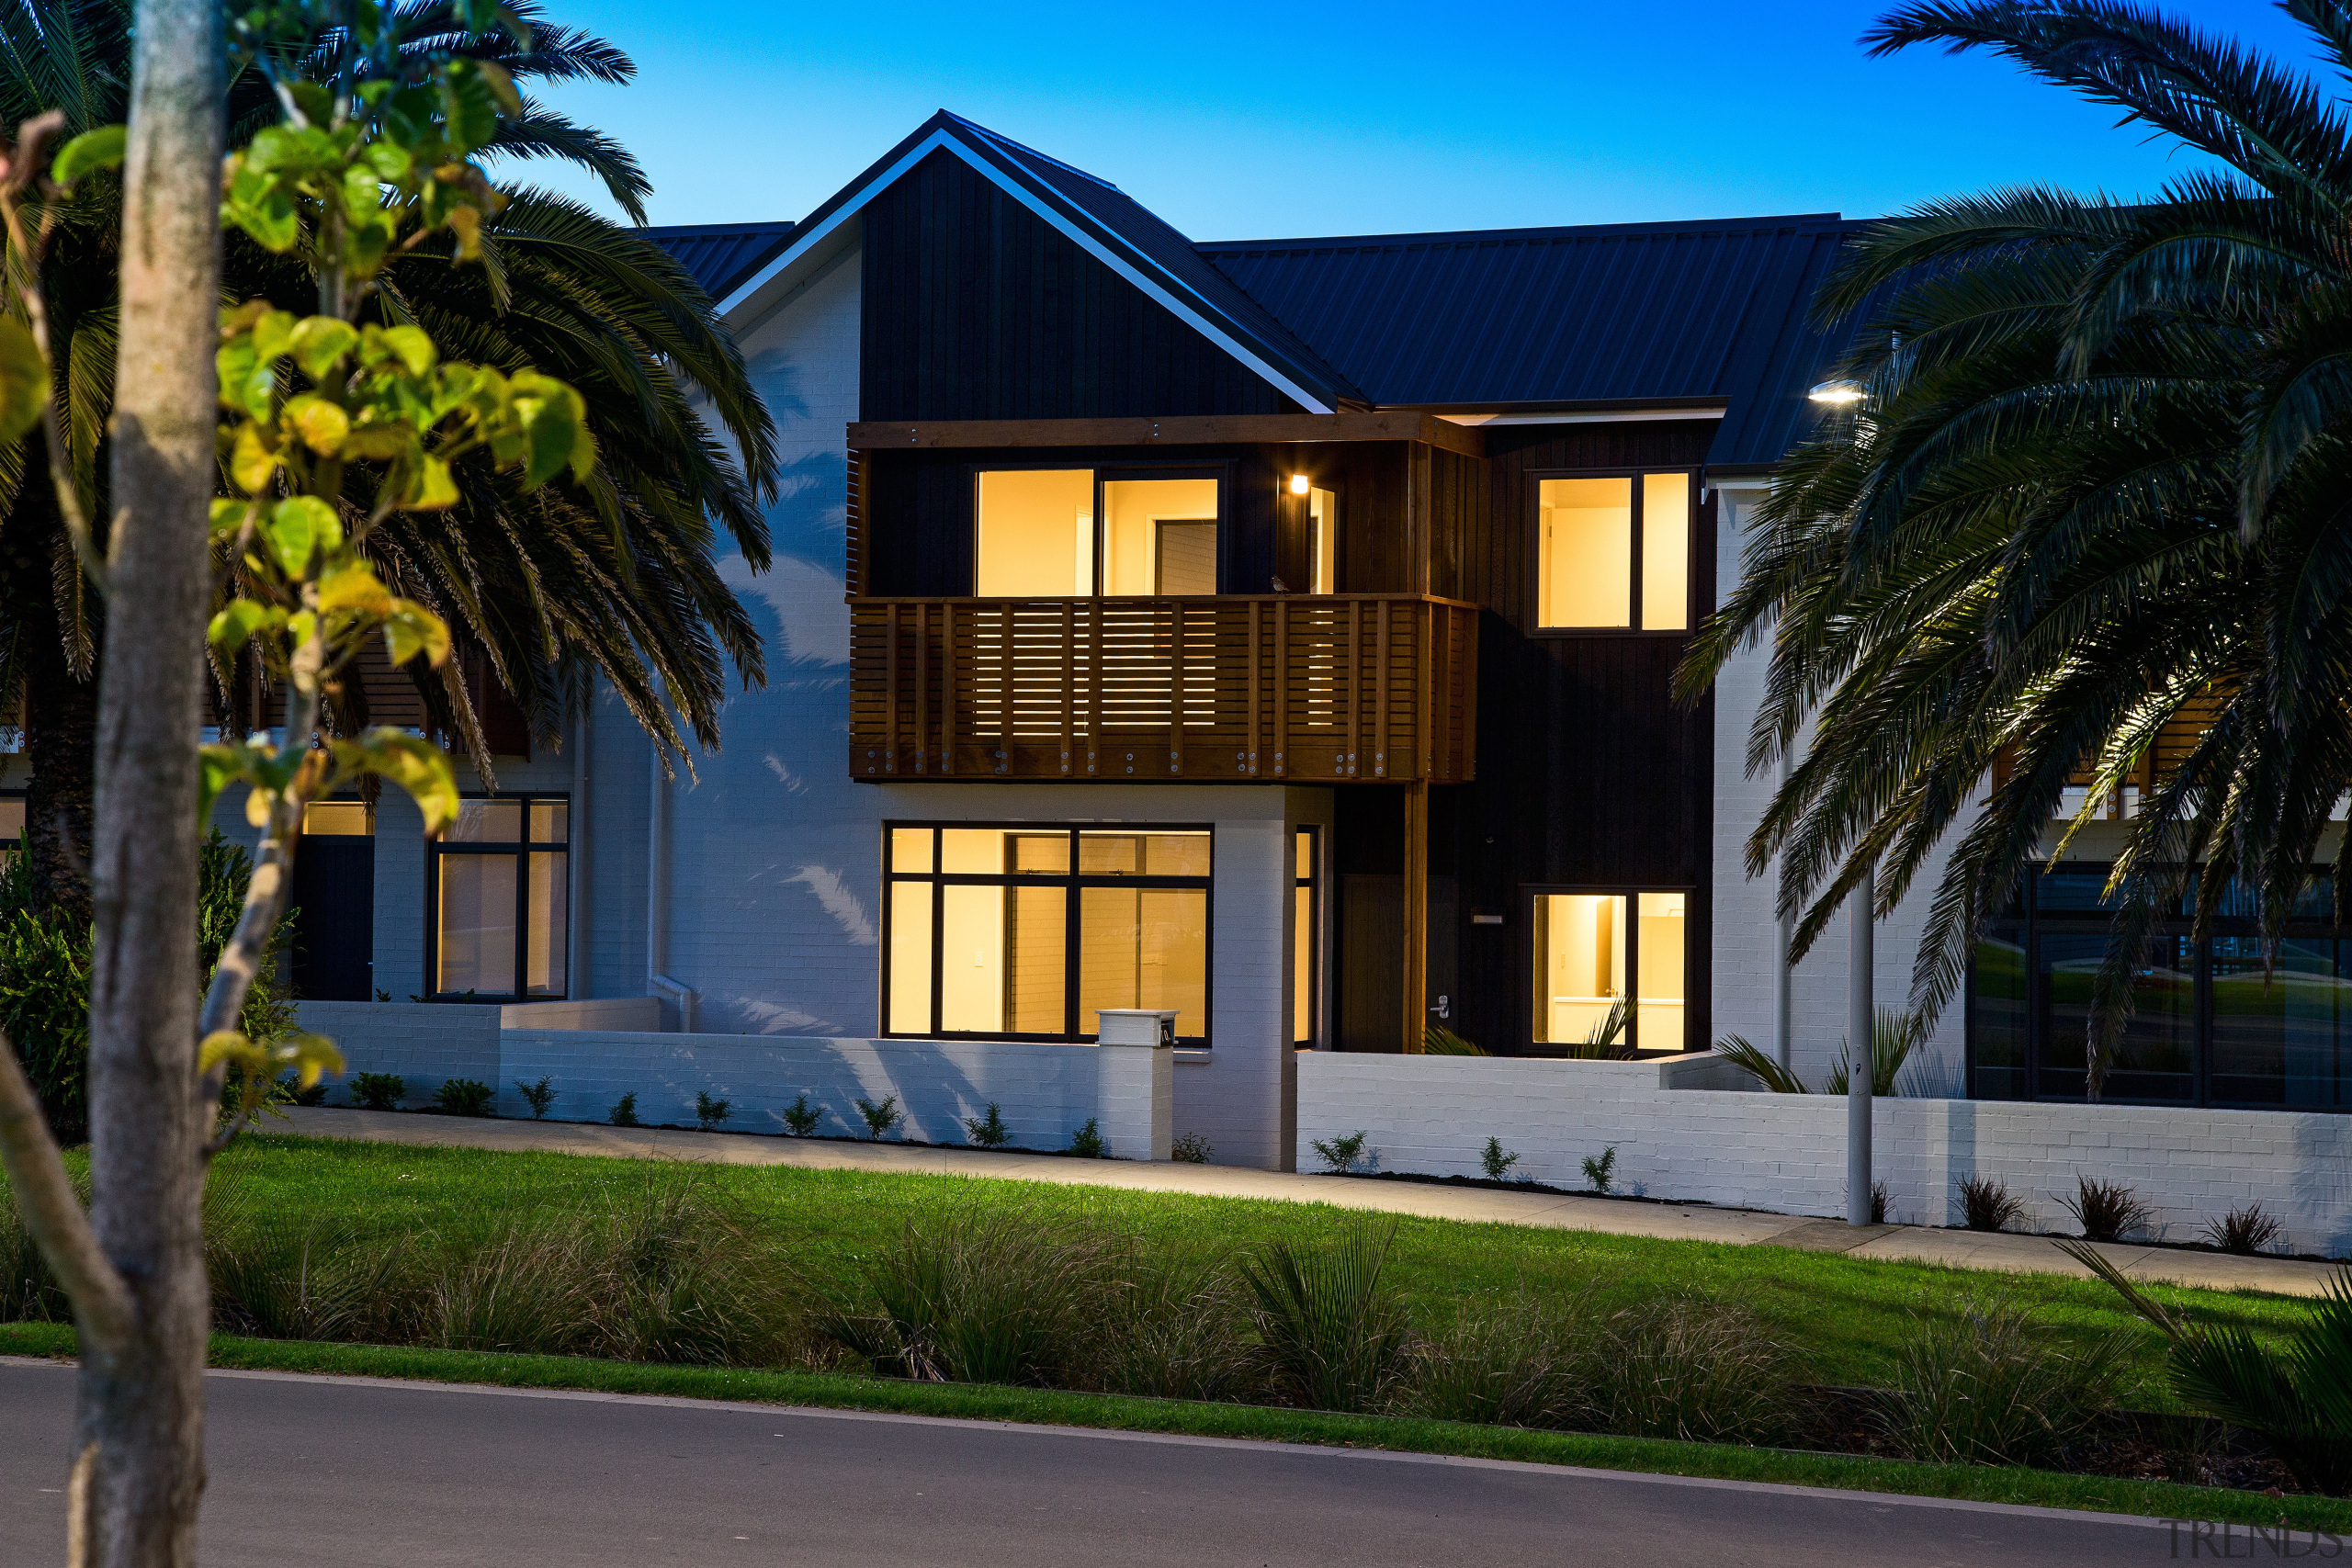 Earcon Acoustics works with developers to ensure new building, estate, facade, home, house, property, real estate, villa, black